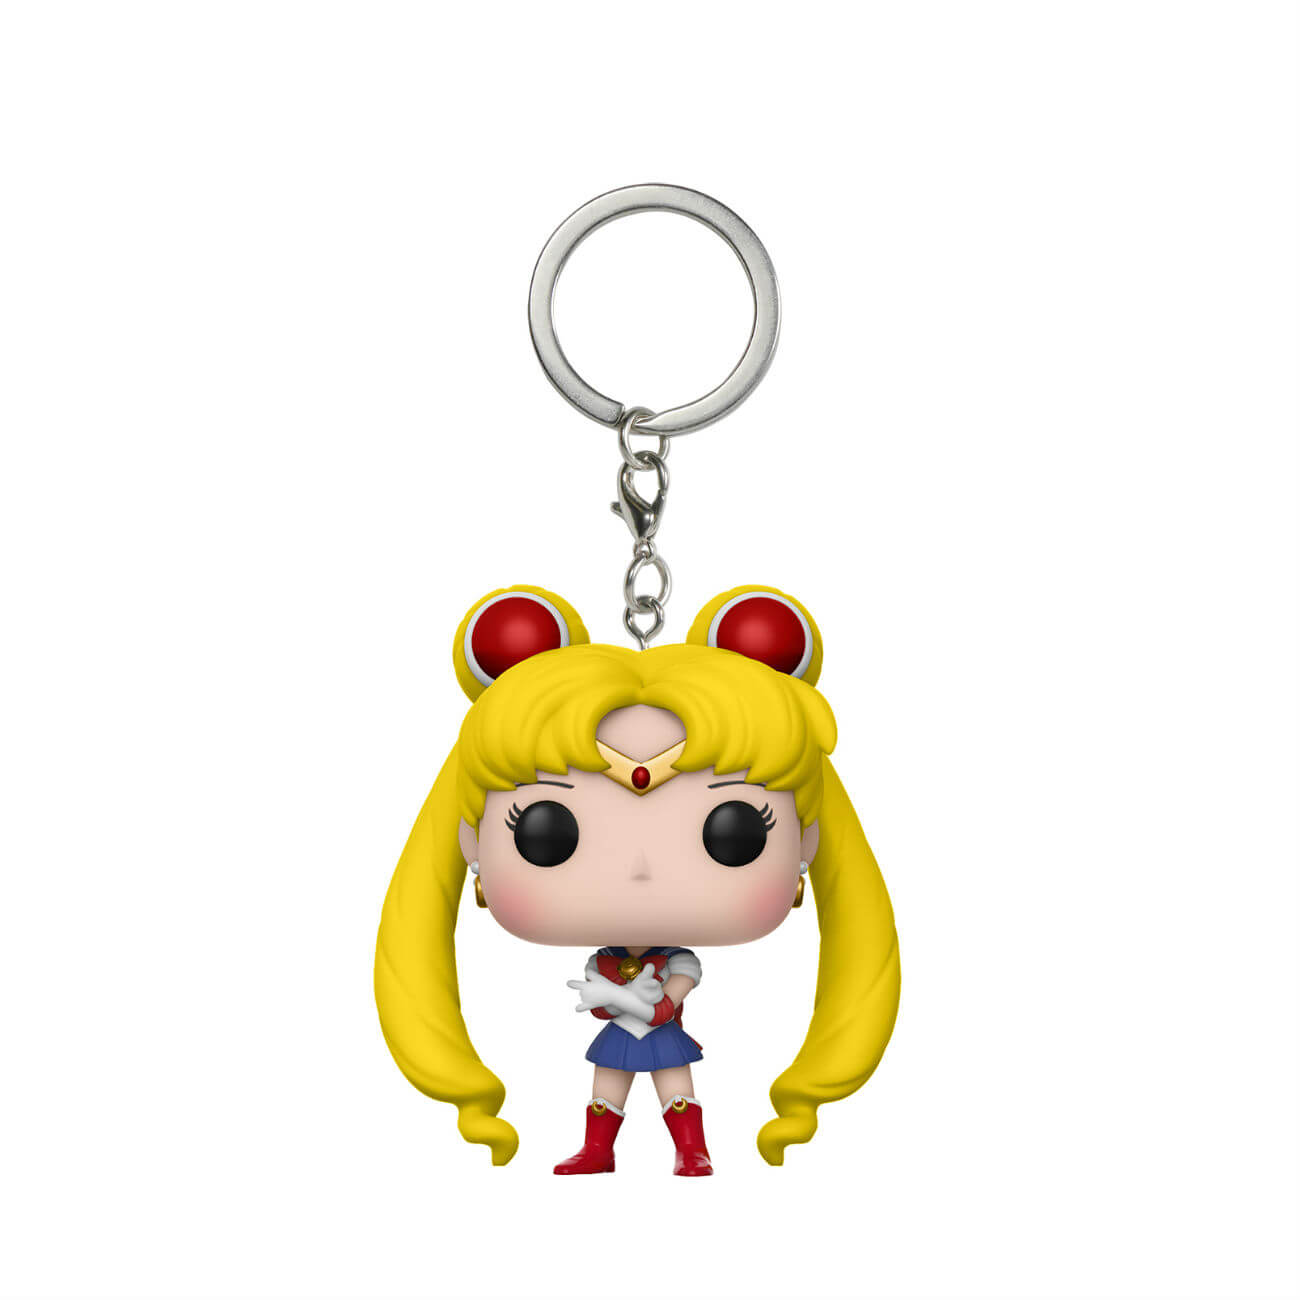 Sailor Moon Pop! Keychain